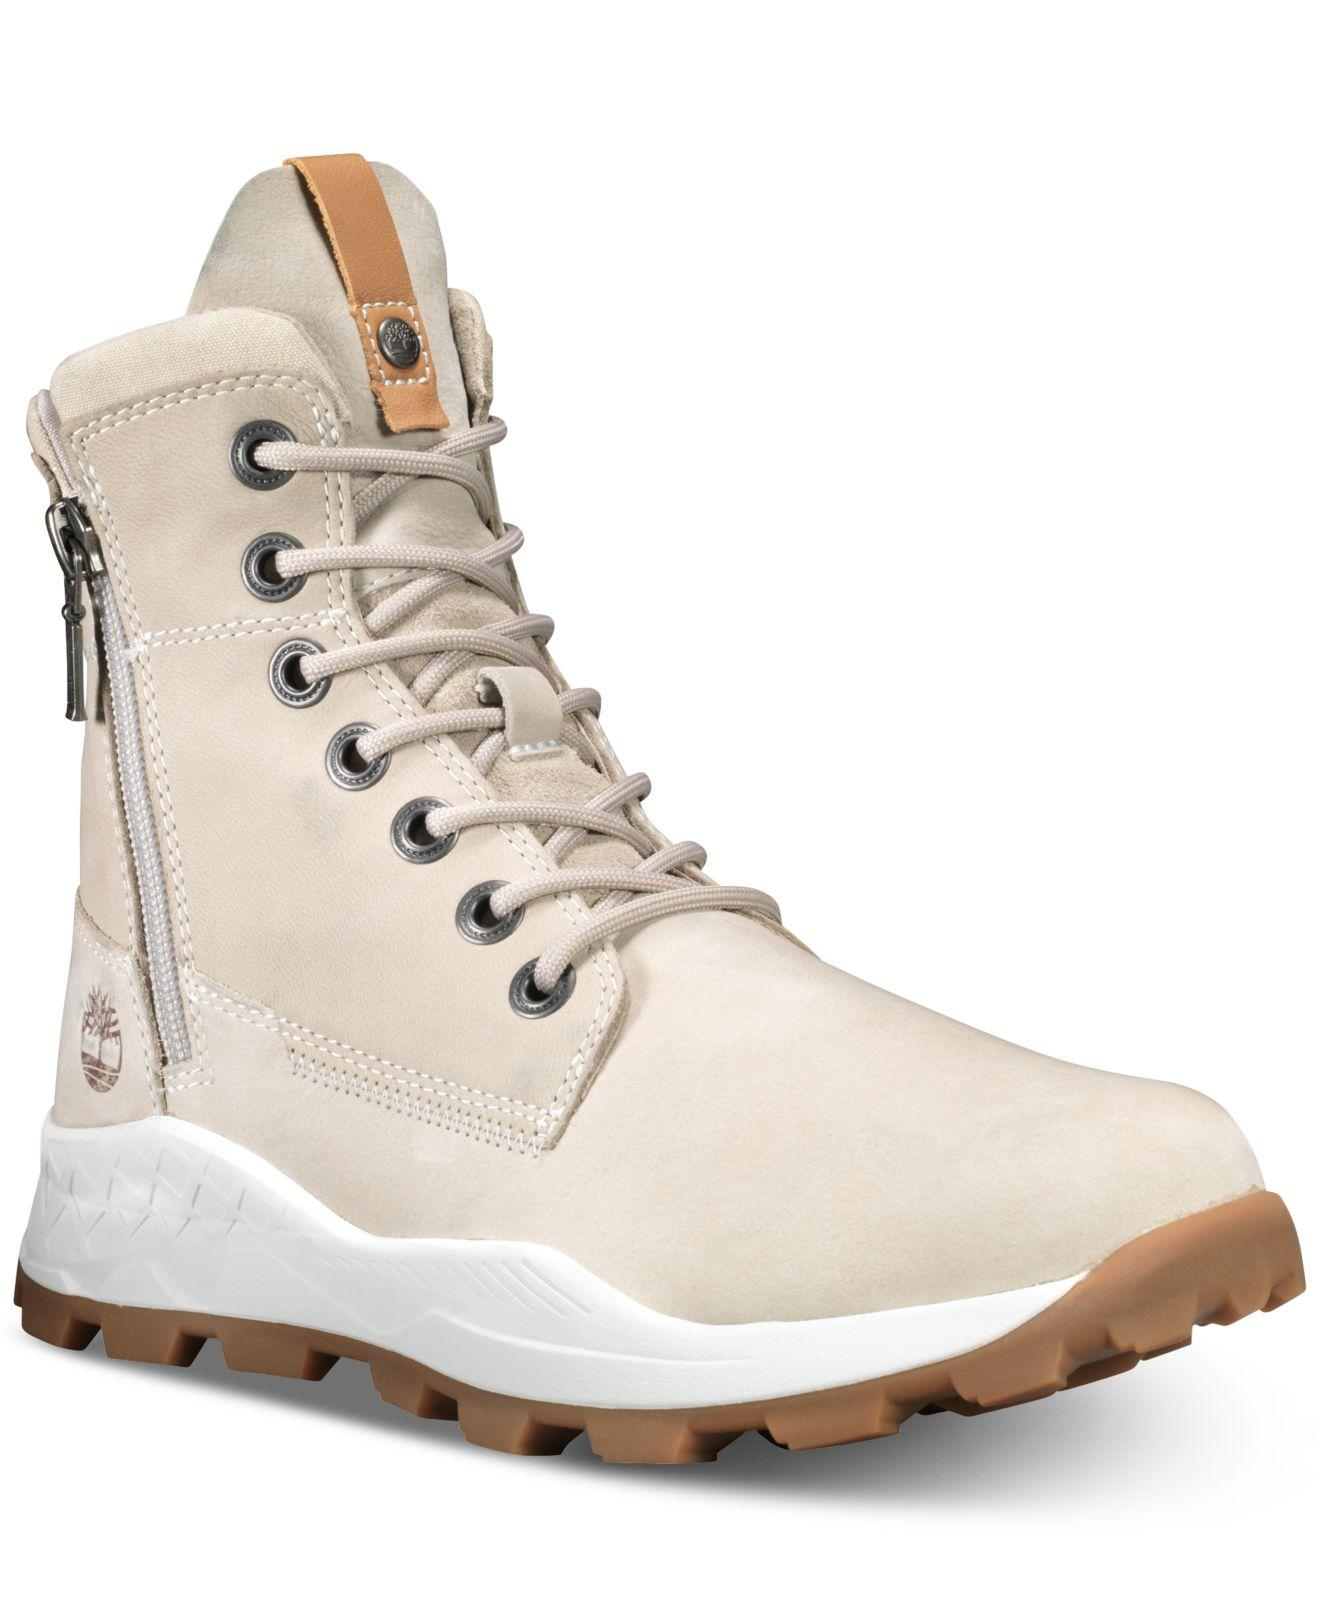 82ed5a409e8e Lyst - Timberland Brooklyn Side-zip Boots in Natural for Men - Save 1%